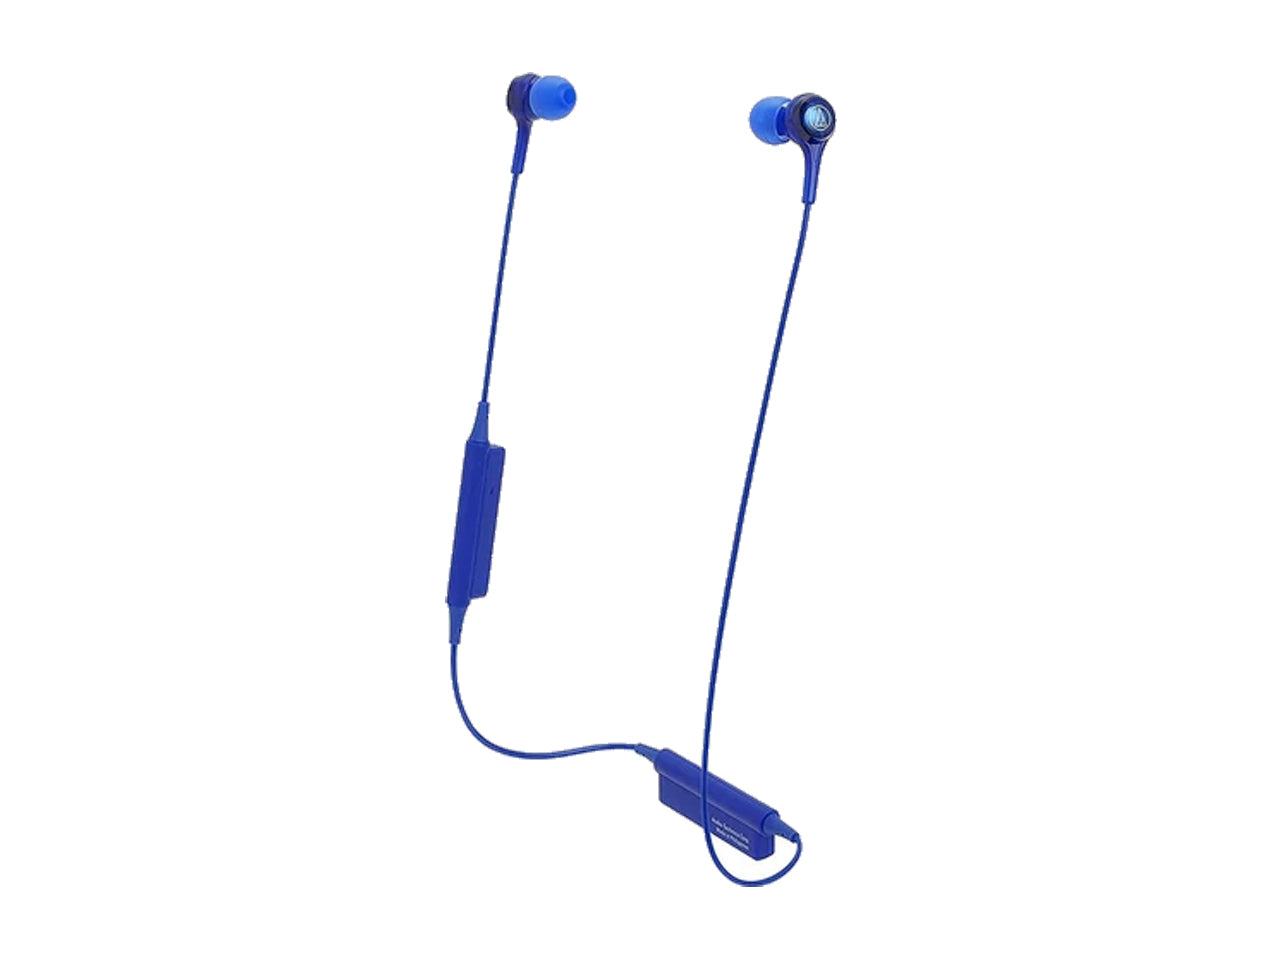 AUDIO TECHNICA WIRELESS IN EAR HEADPHONES WITH MIC (Blue)-computerspace